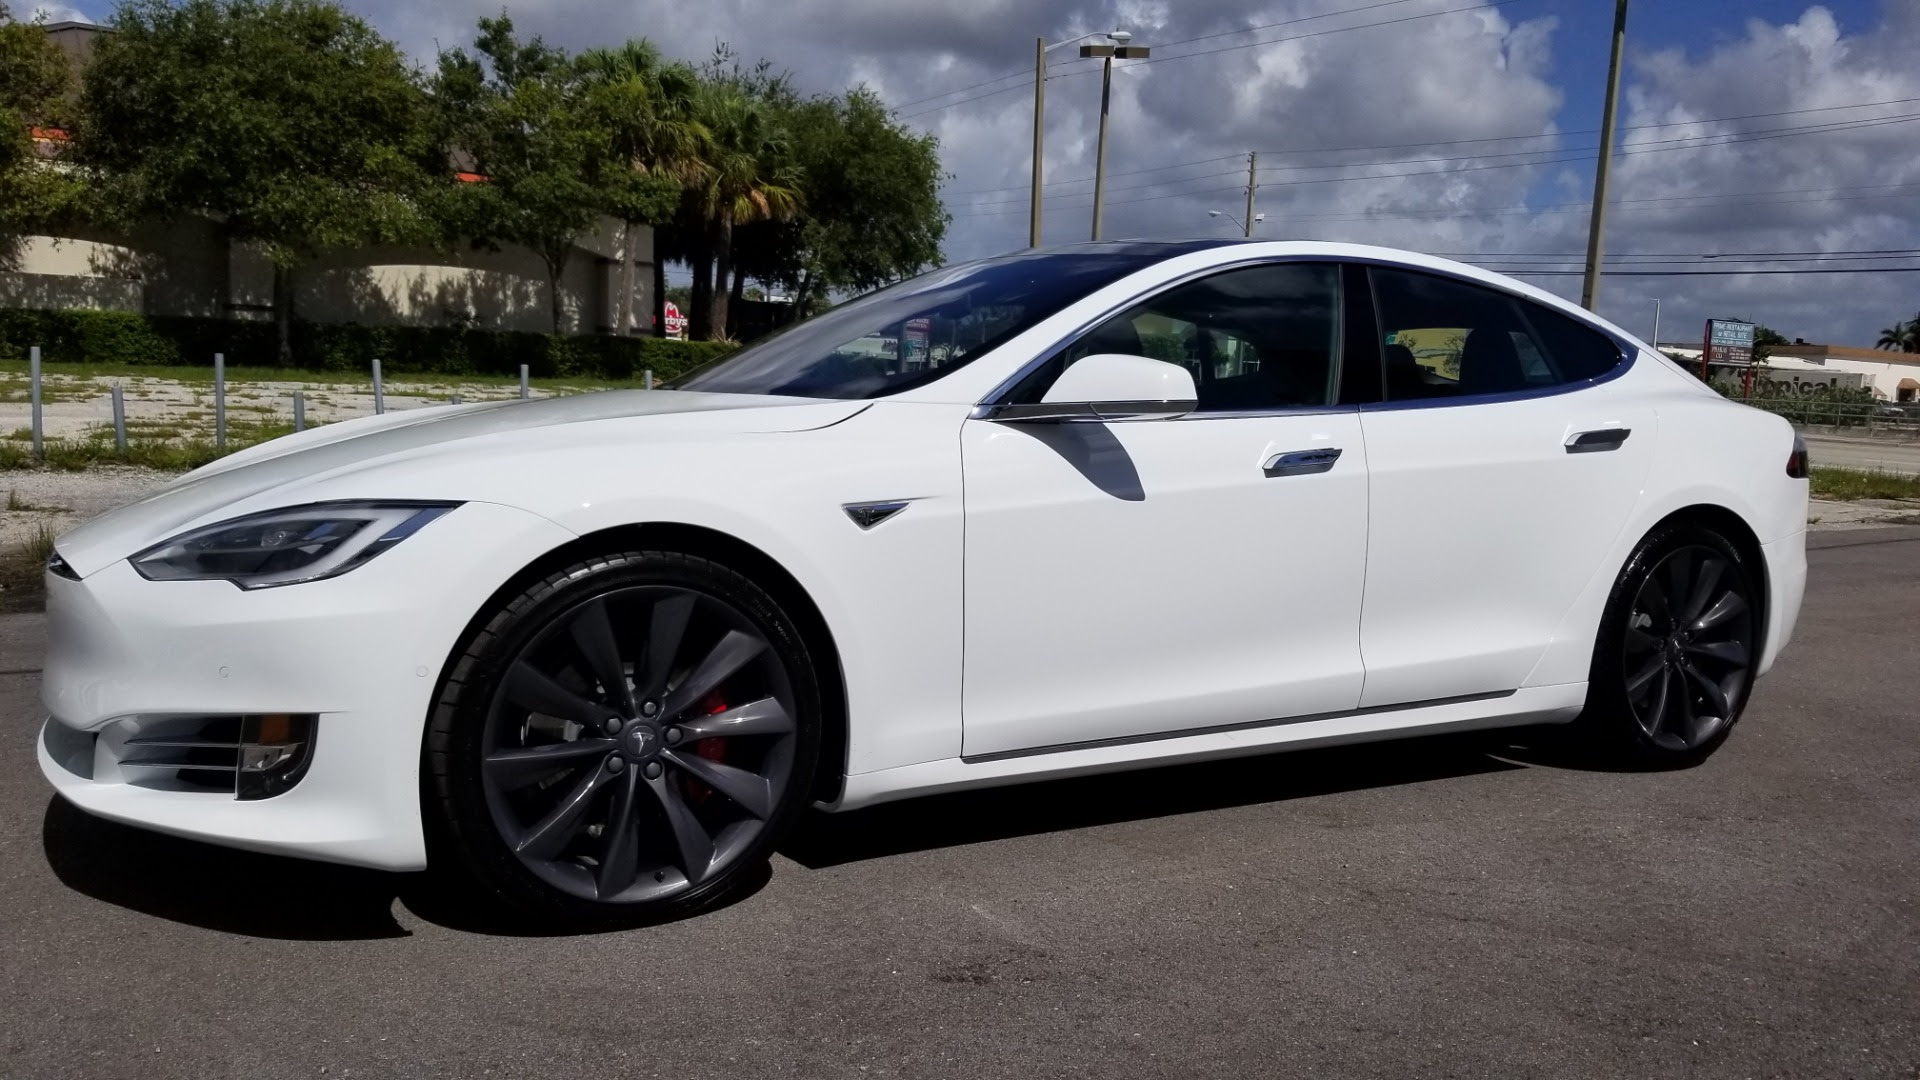 Used 2016 Tesla Model S P90d For Sale 87900 Marino